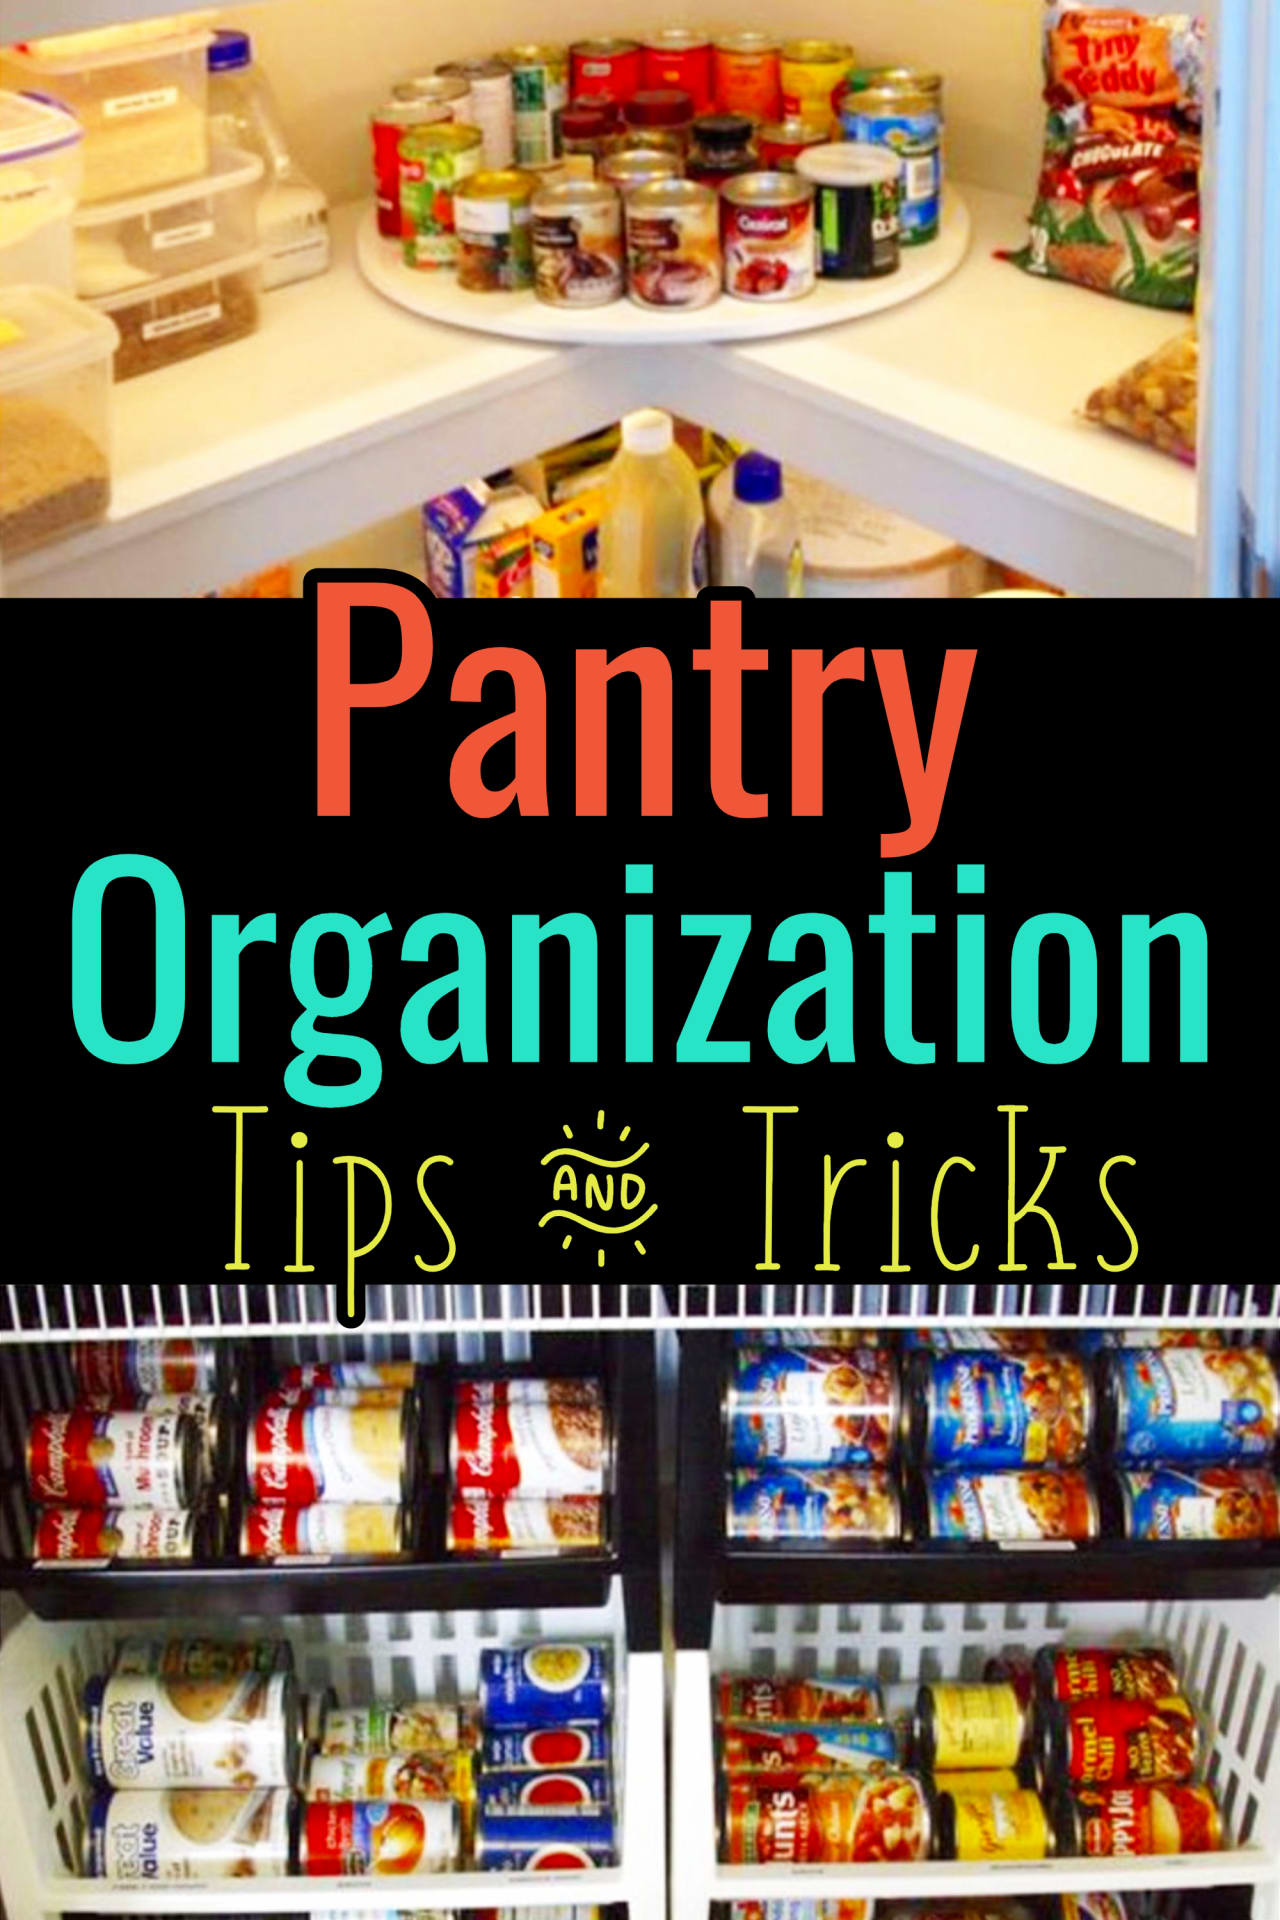 Pantry Organization! Declutter and organize your kitchen pantry with these pantry organization tips and tricks.  The pantry attracts so much clutter here's how Professional Organizers get organized in kitchen pantry areas (put this in your printable household notebook!)